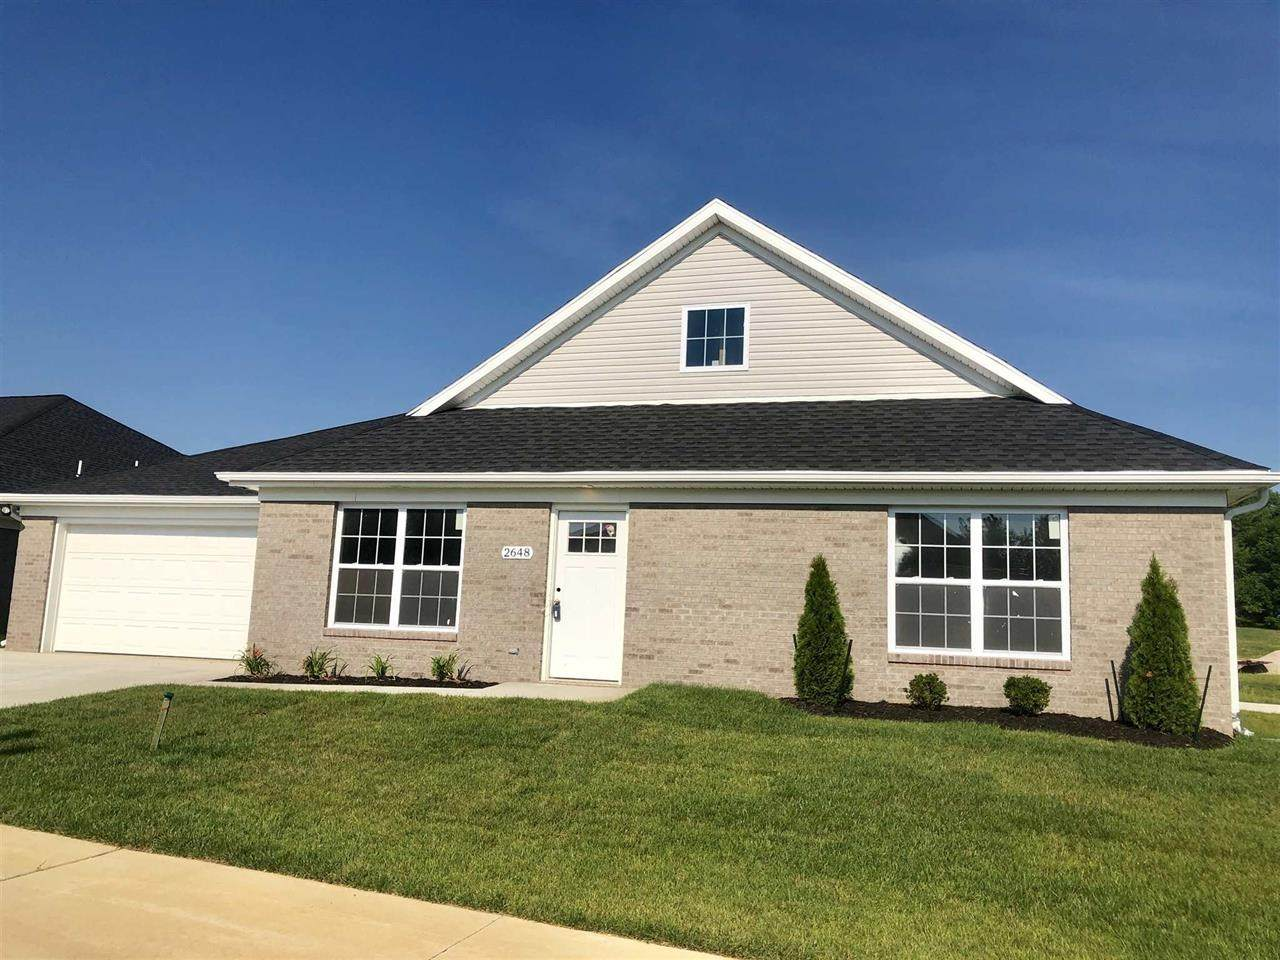 2648 Orleans Trace - Photo 1